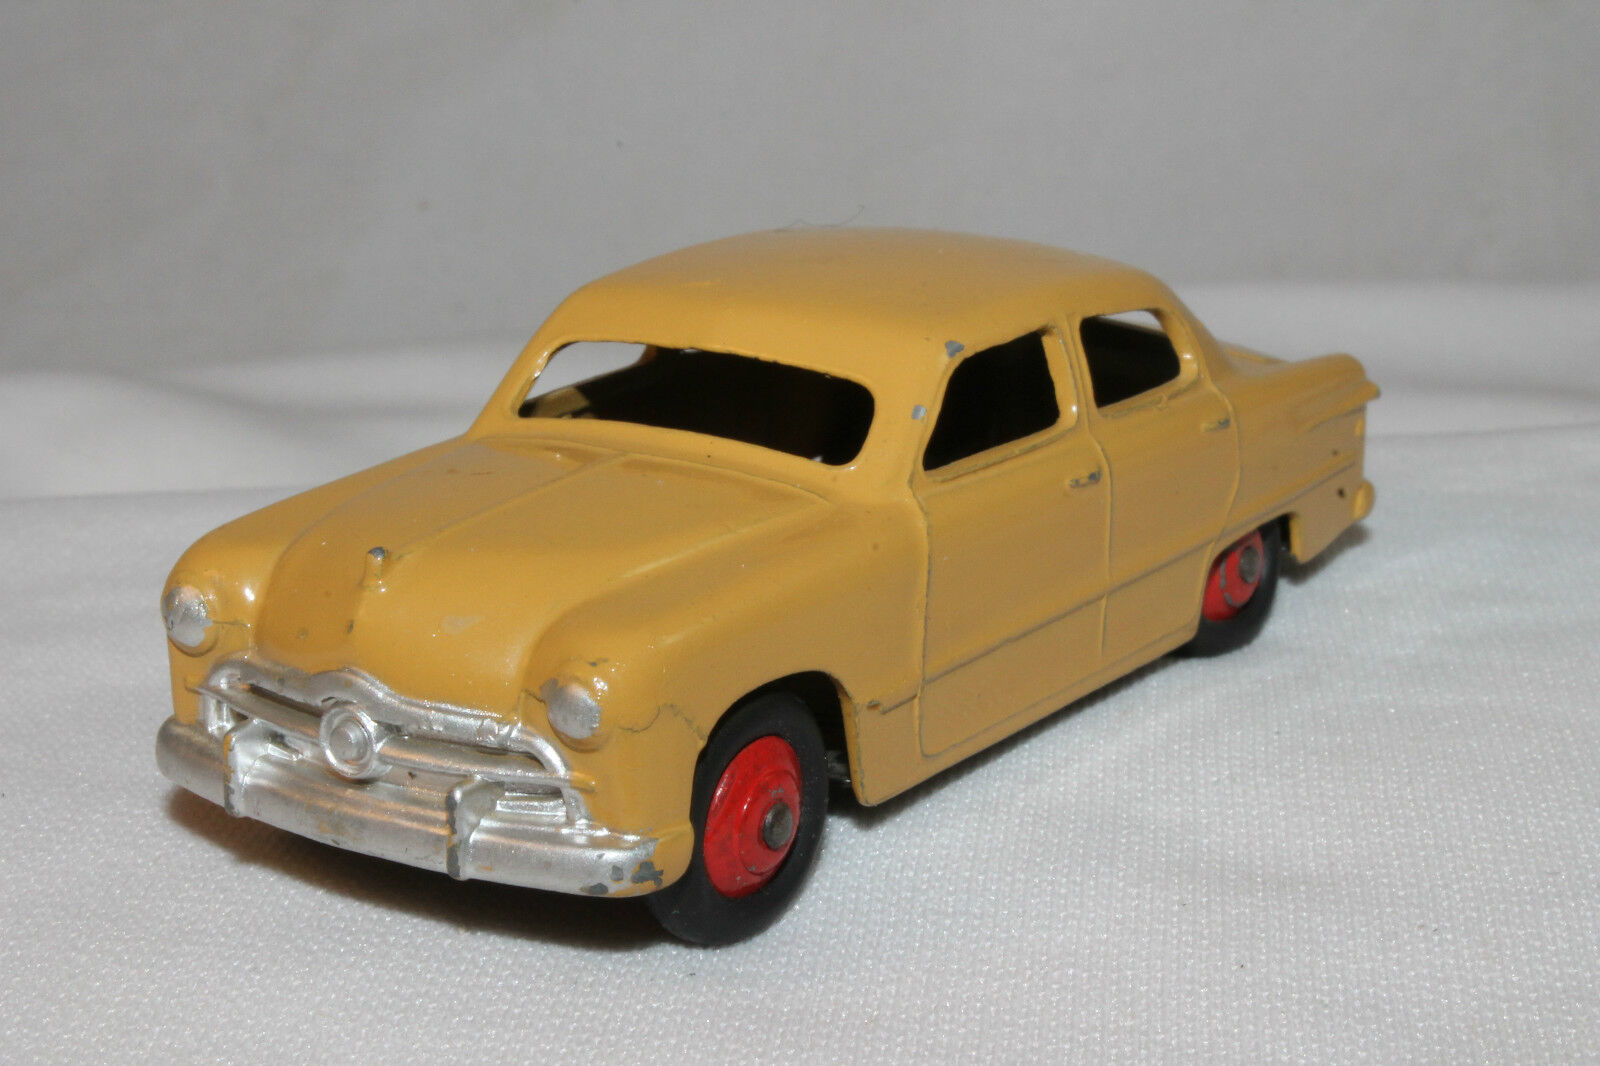 1949 Ford Sedan, Dinky Toys  139a, Nice Original